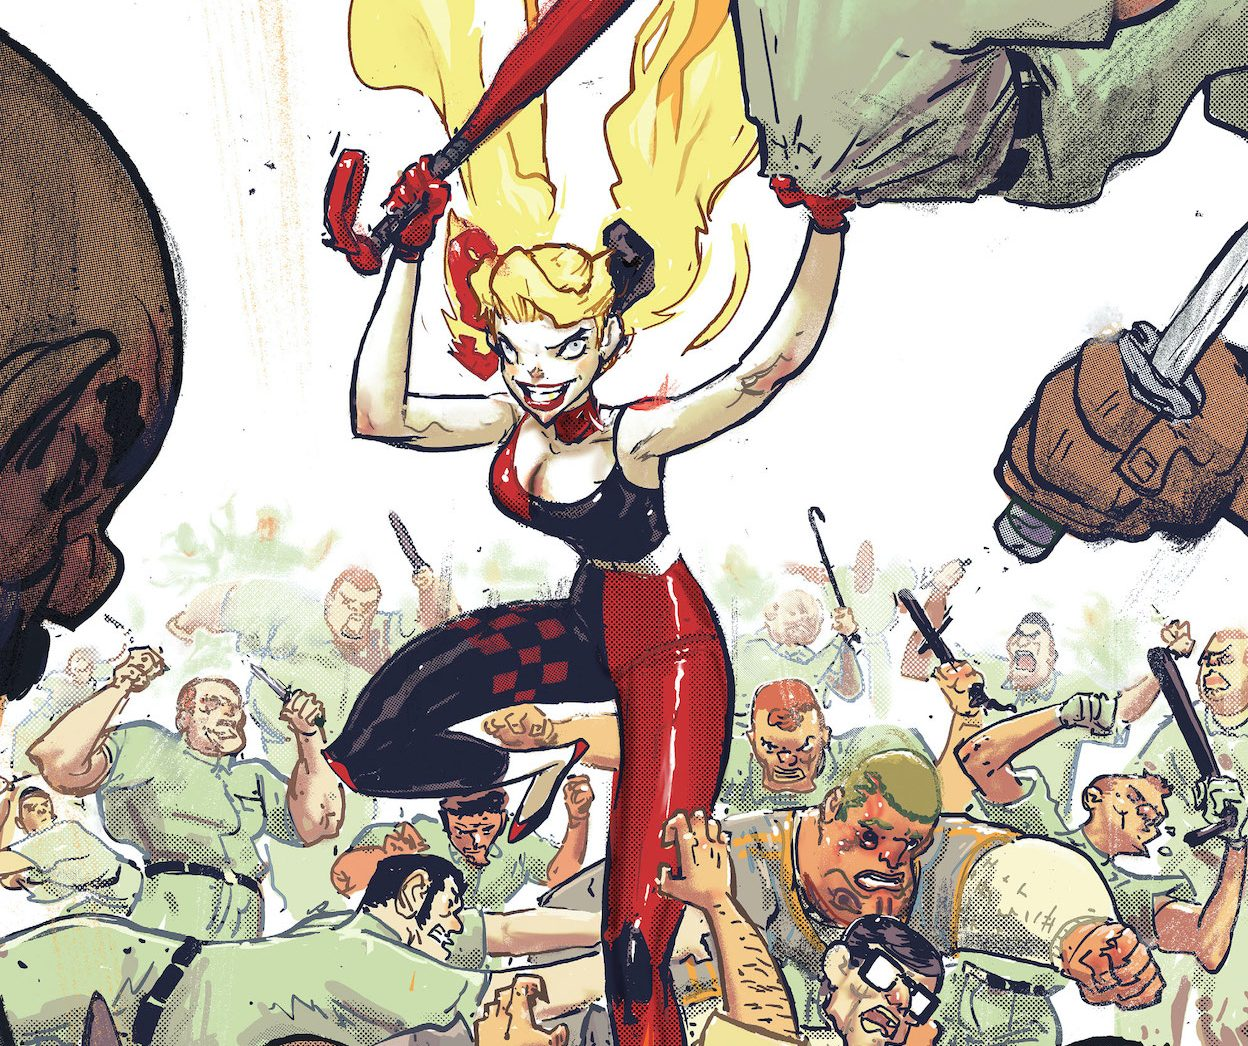 'Harley Quinn' #2 presents a conflict not far removed from our own society